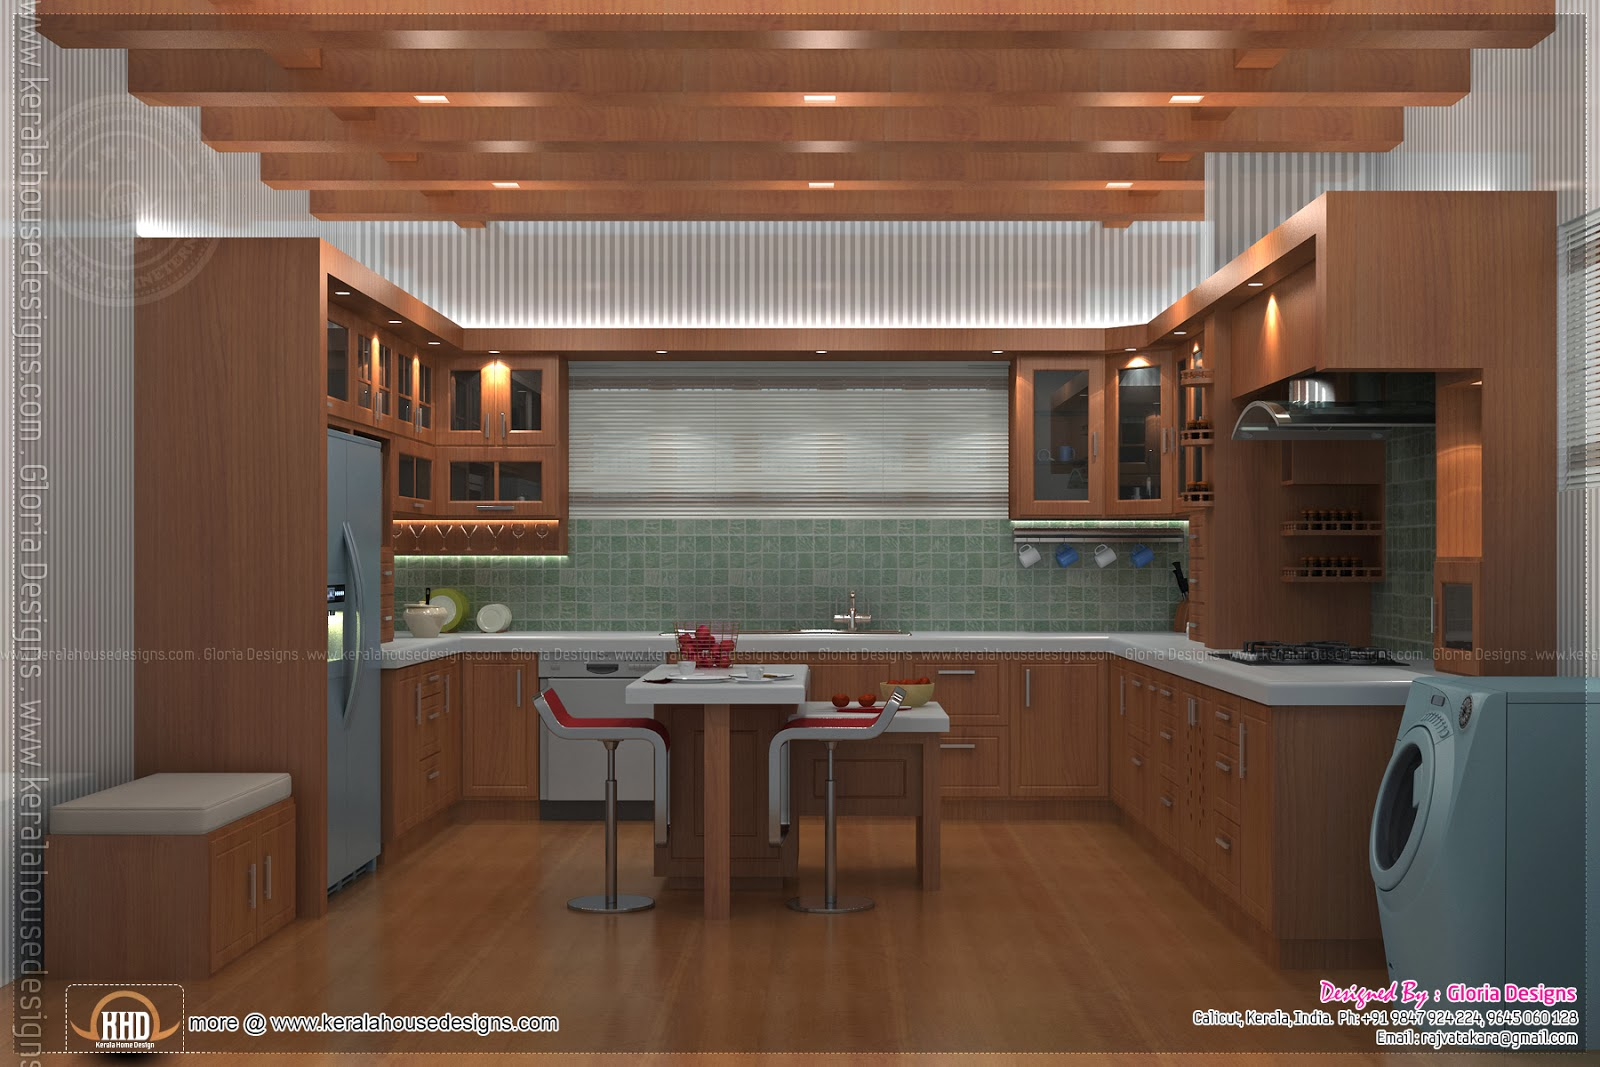 Home interior designs by gloria designs calicut home for New kitchen designs in kerala